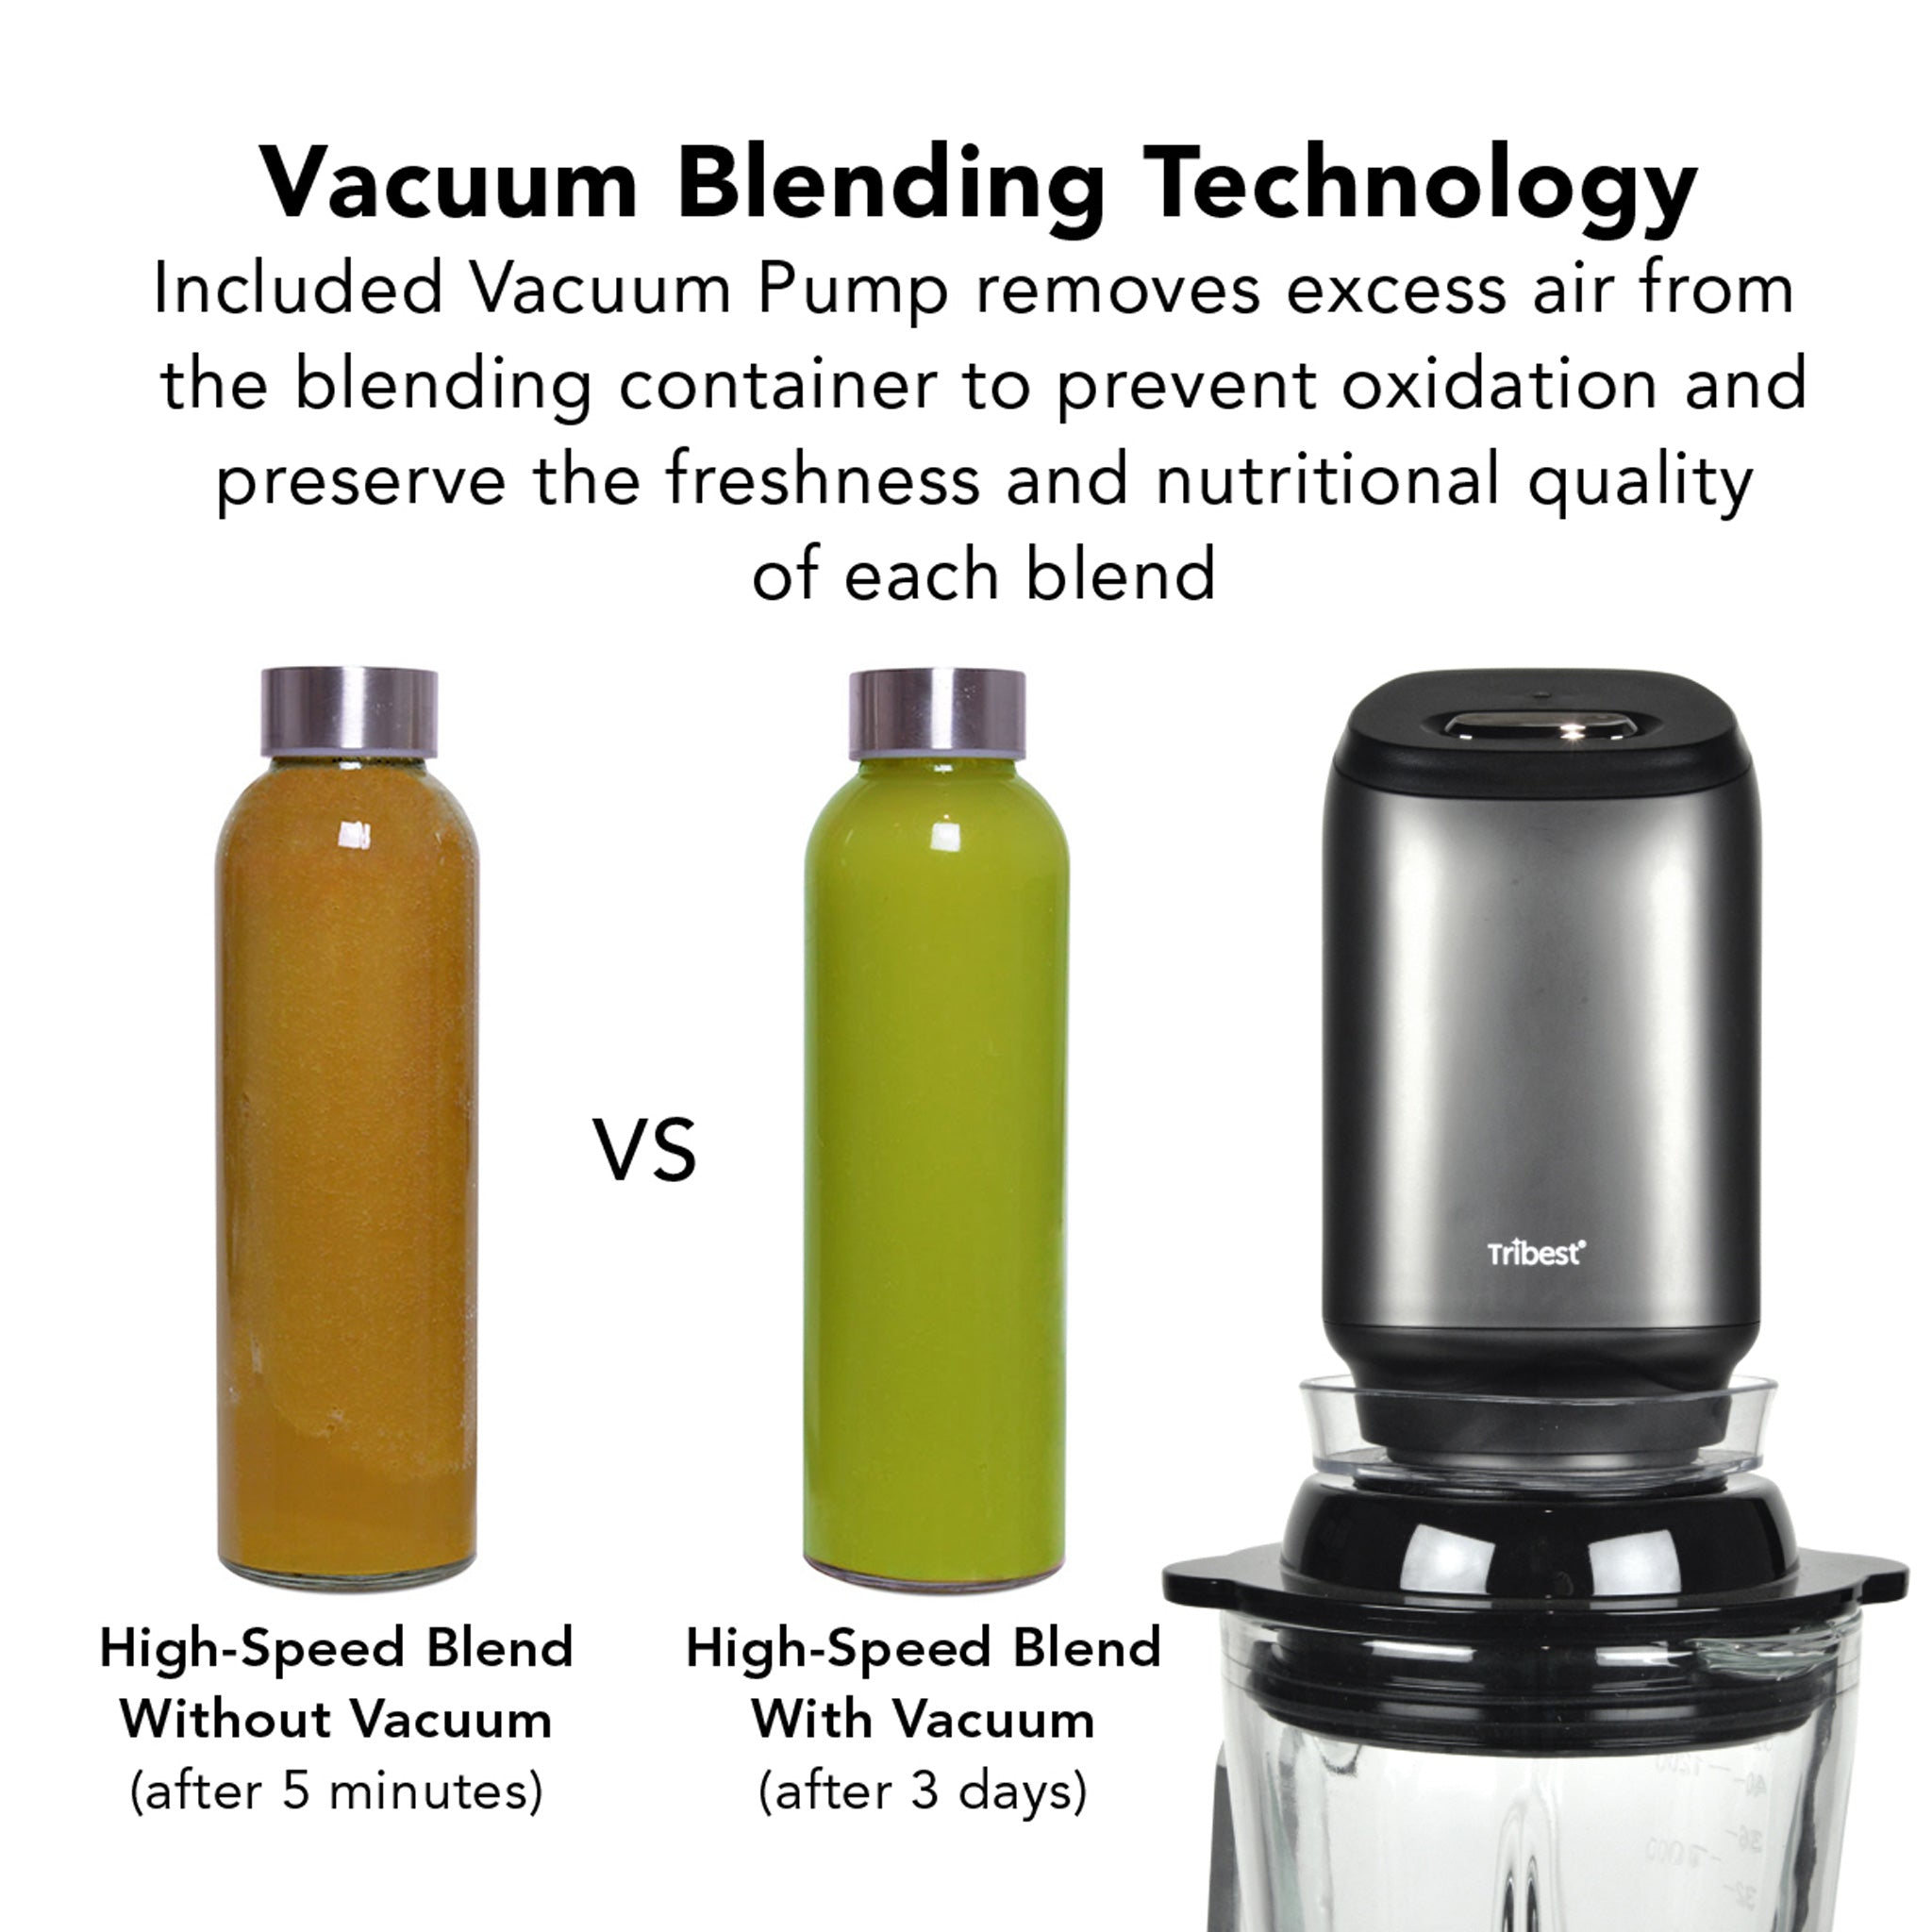 Glass Personal Blender with Vacuum Blender PBG-5001-A - Green Apples Comparison - Tribest